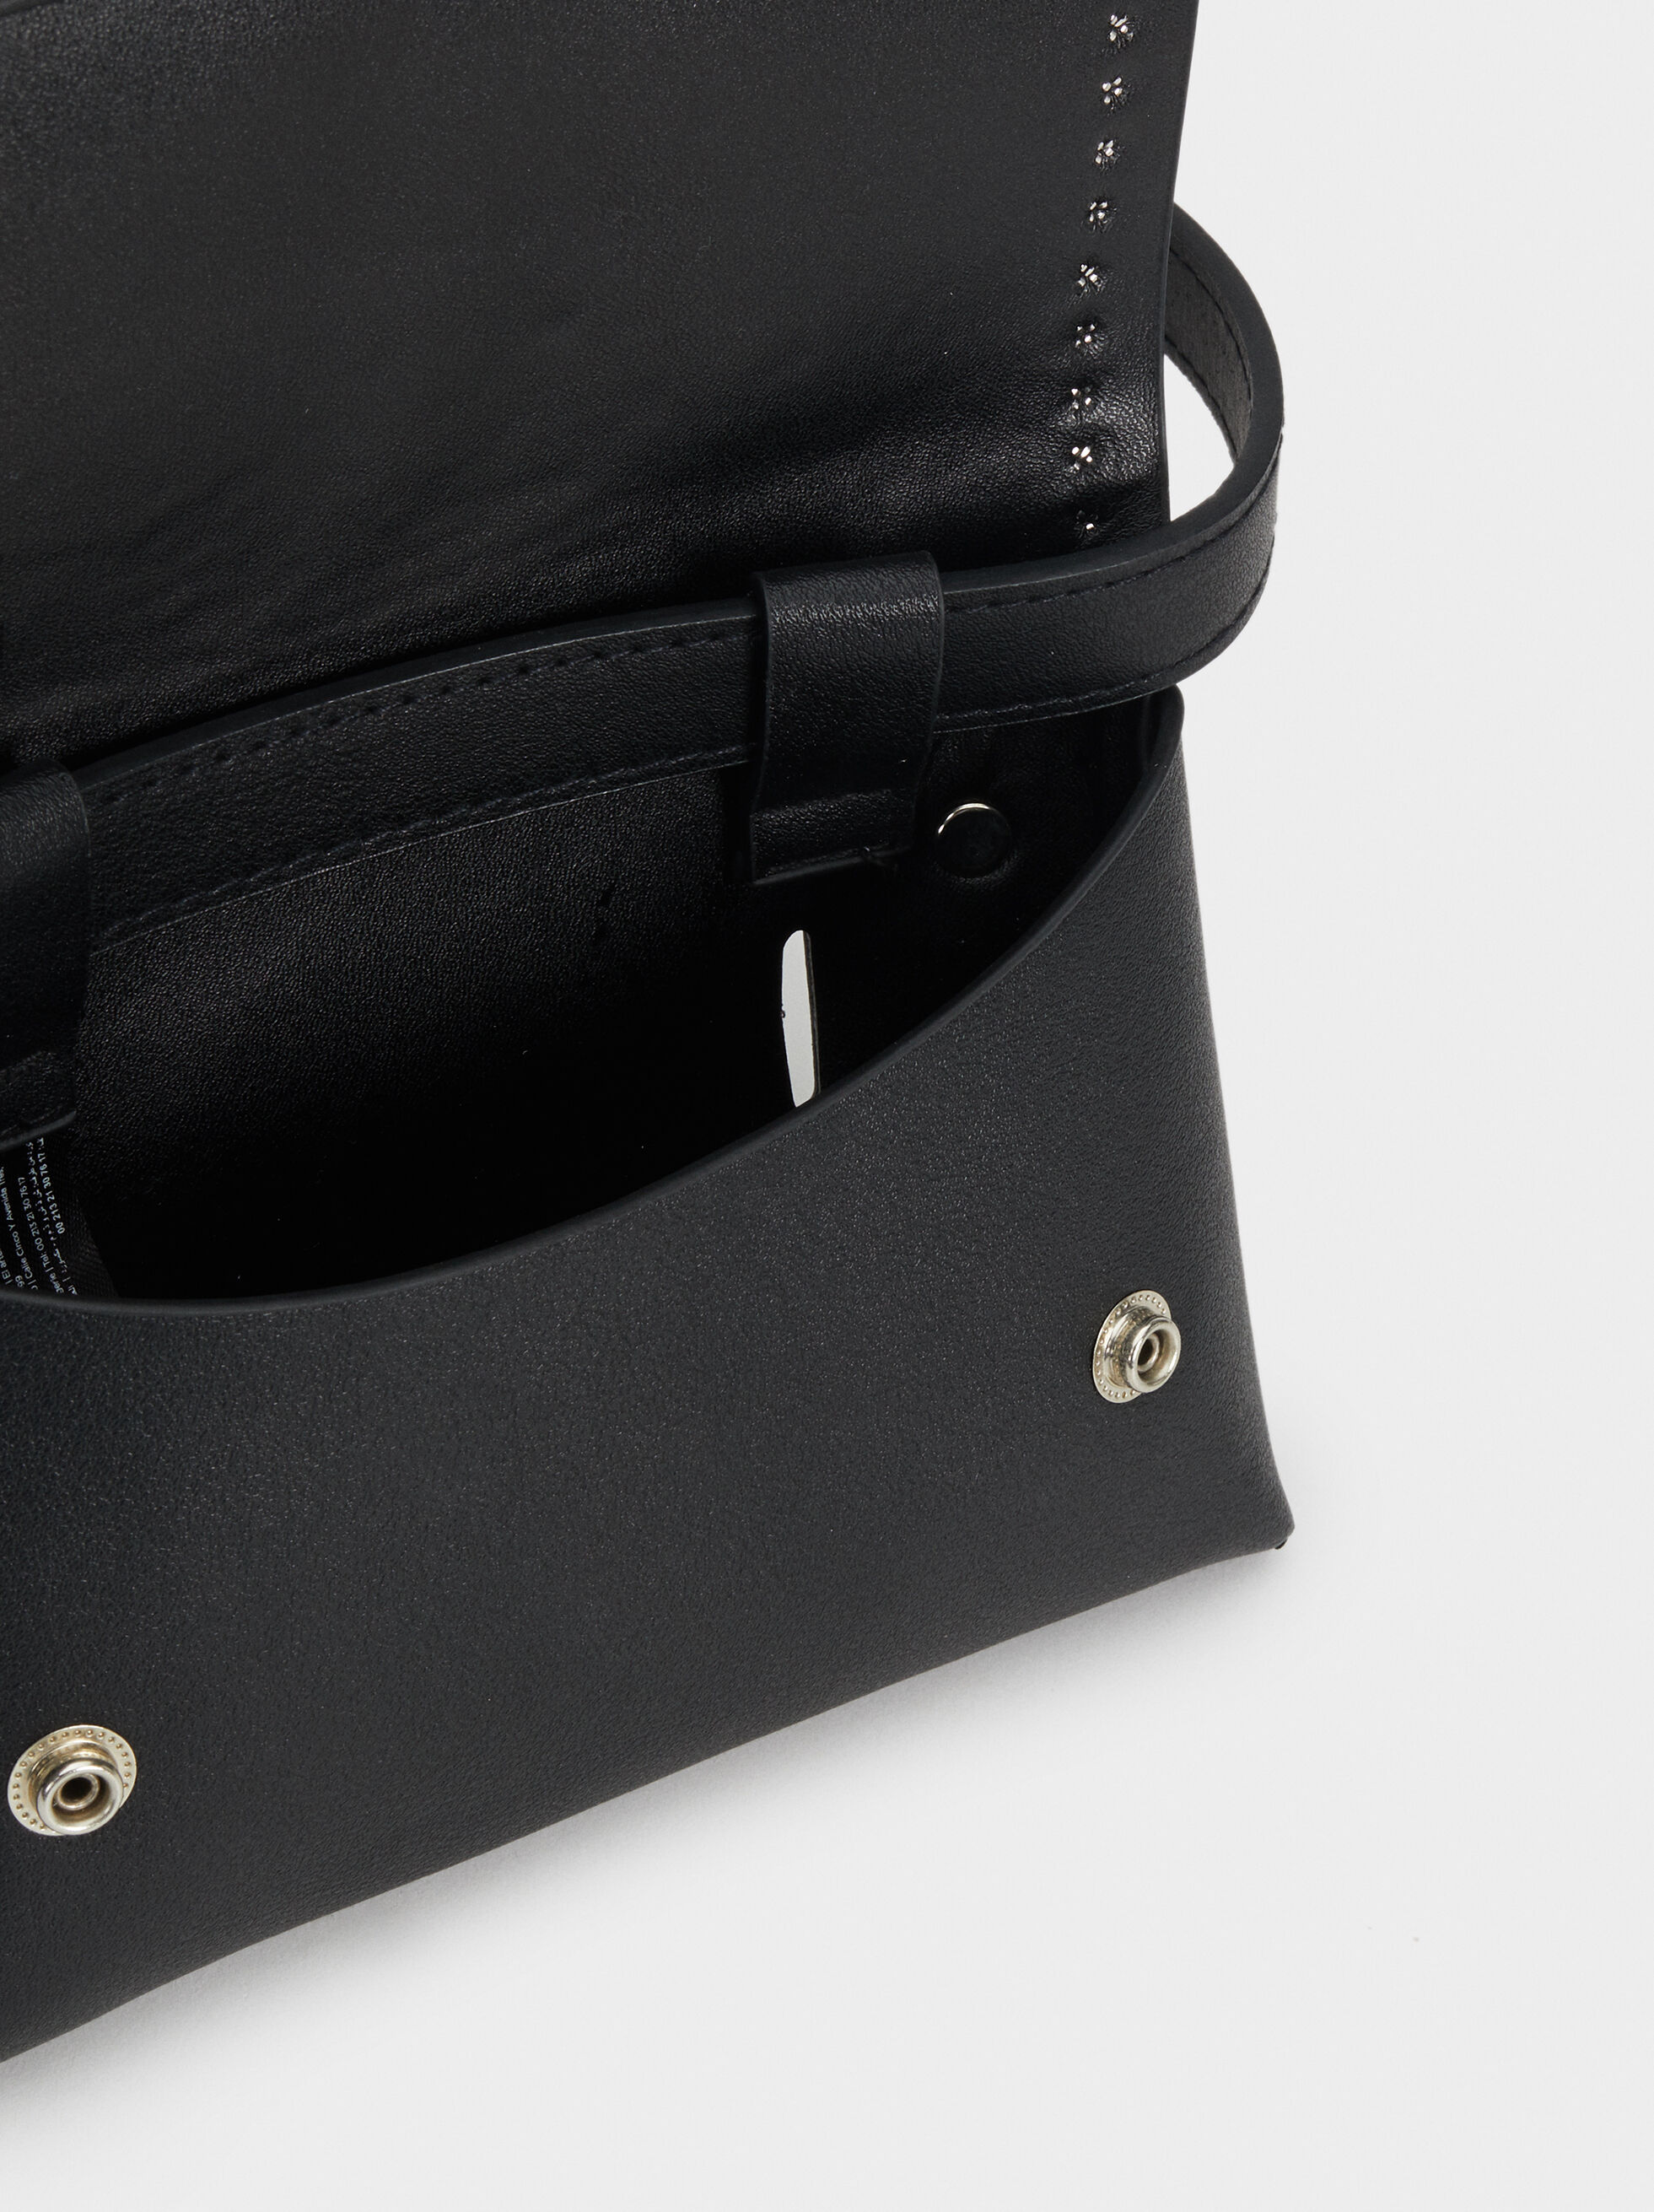 Belt Bag With Studs, Black, hi-res